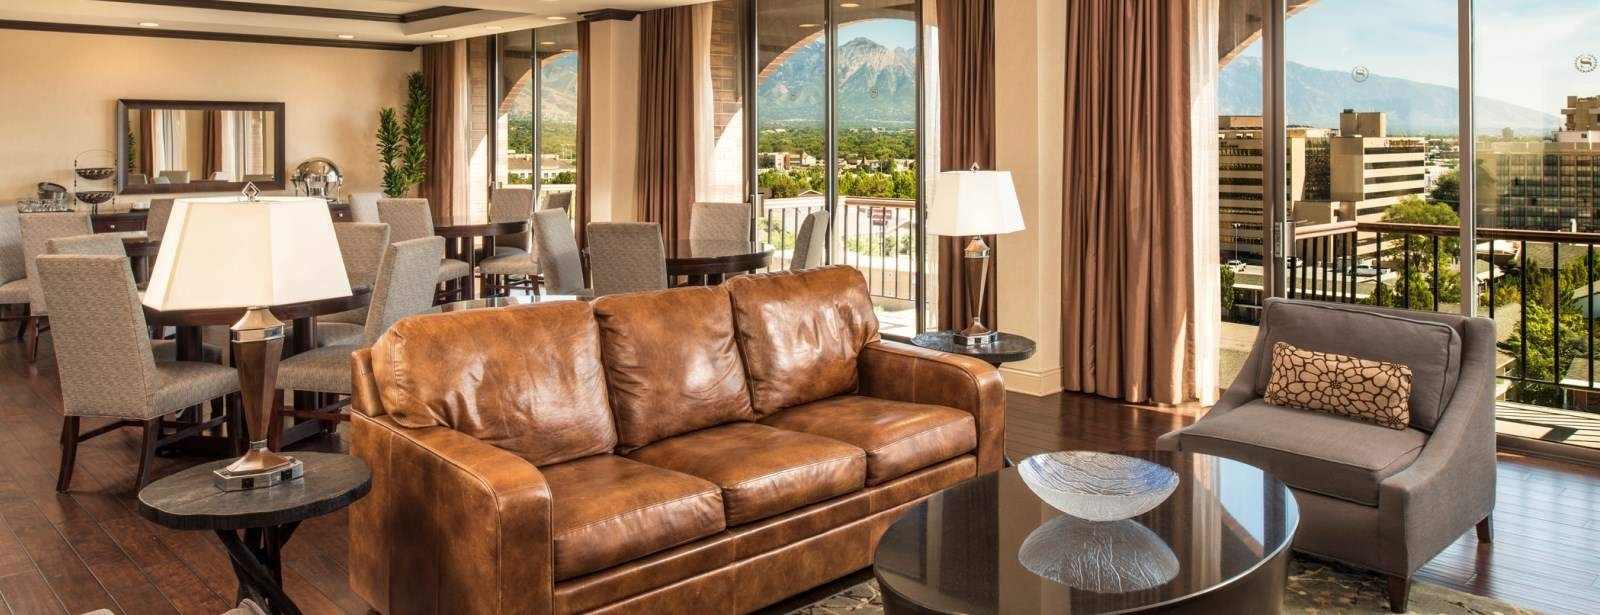 Club Level Room | Sheraton Salt Lake City Hotel